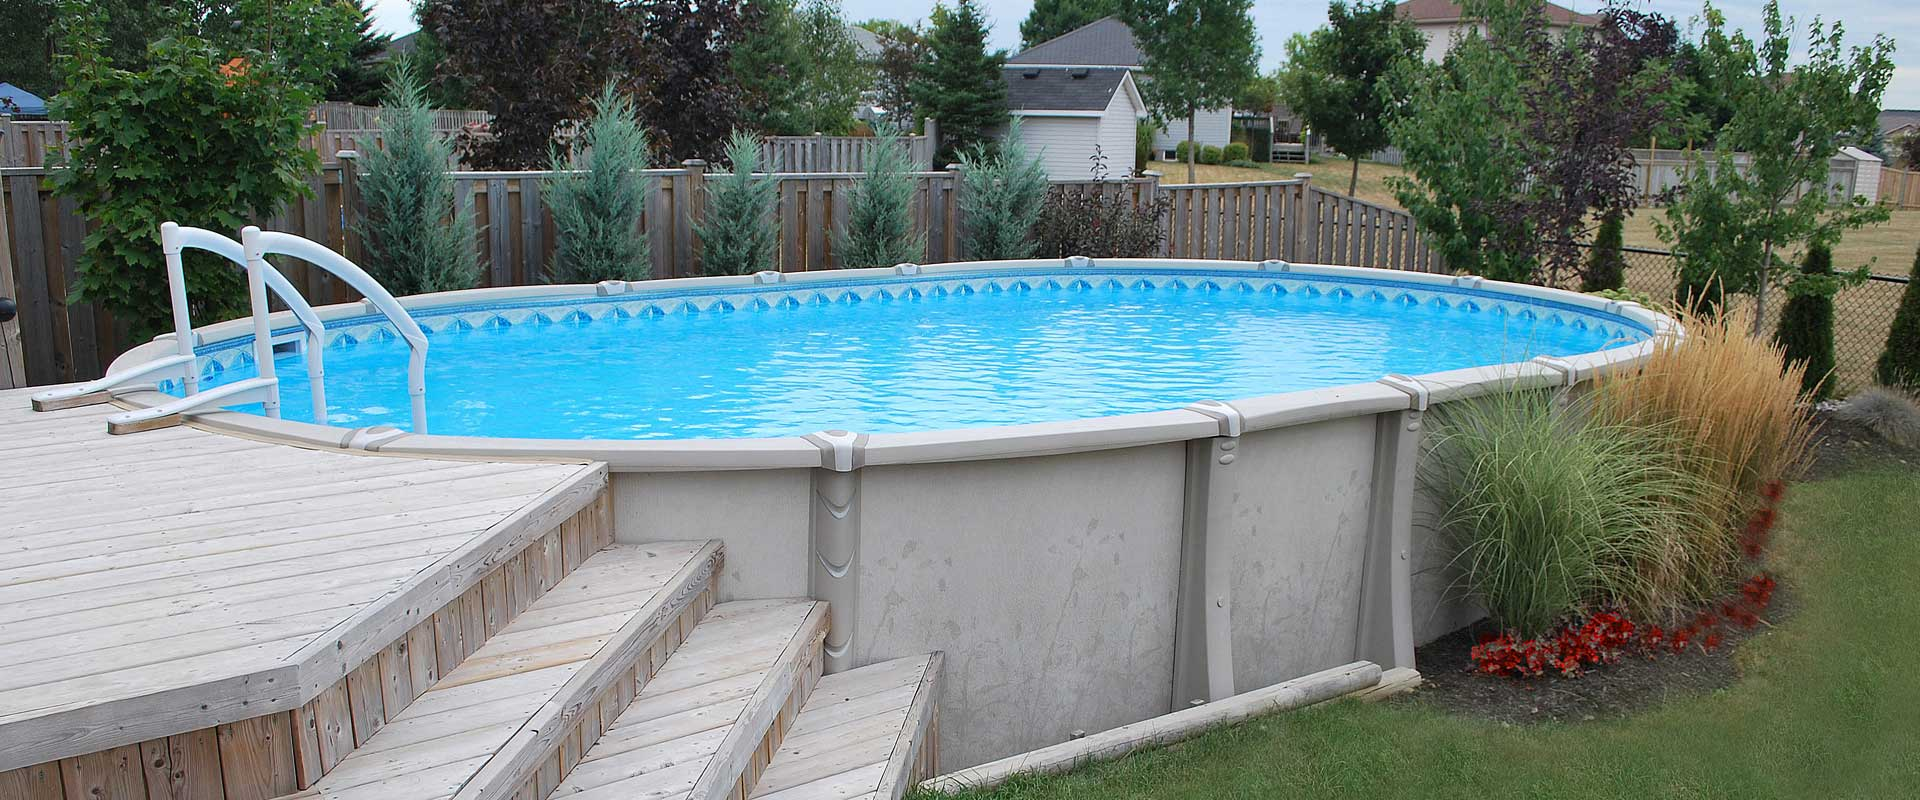 Above ground pools resin steel boldt pools spas - How to build an above ground swimming pool ...